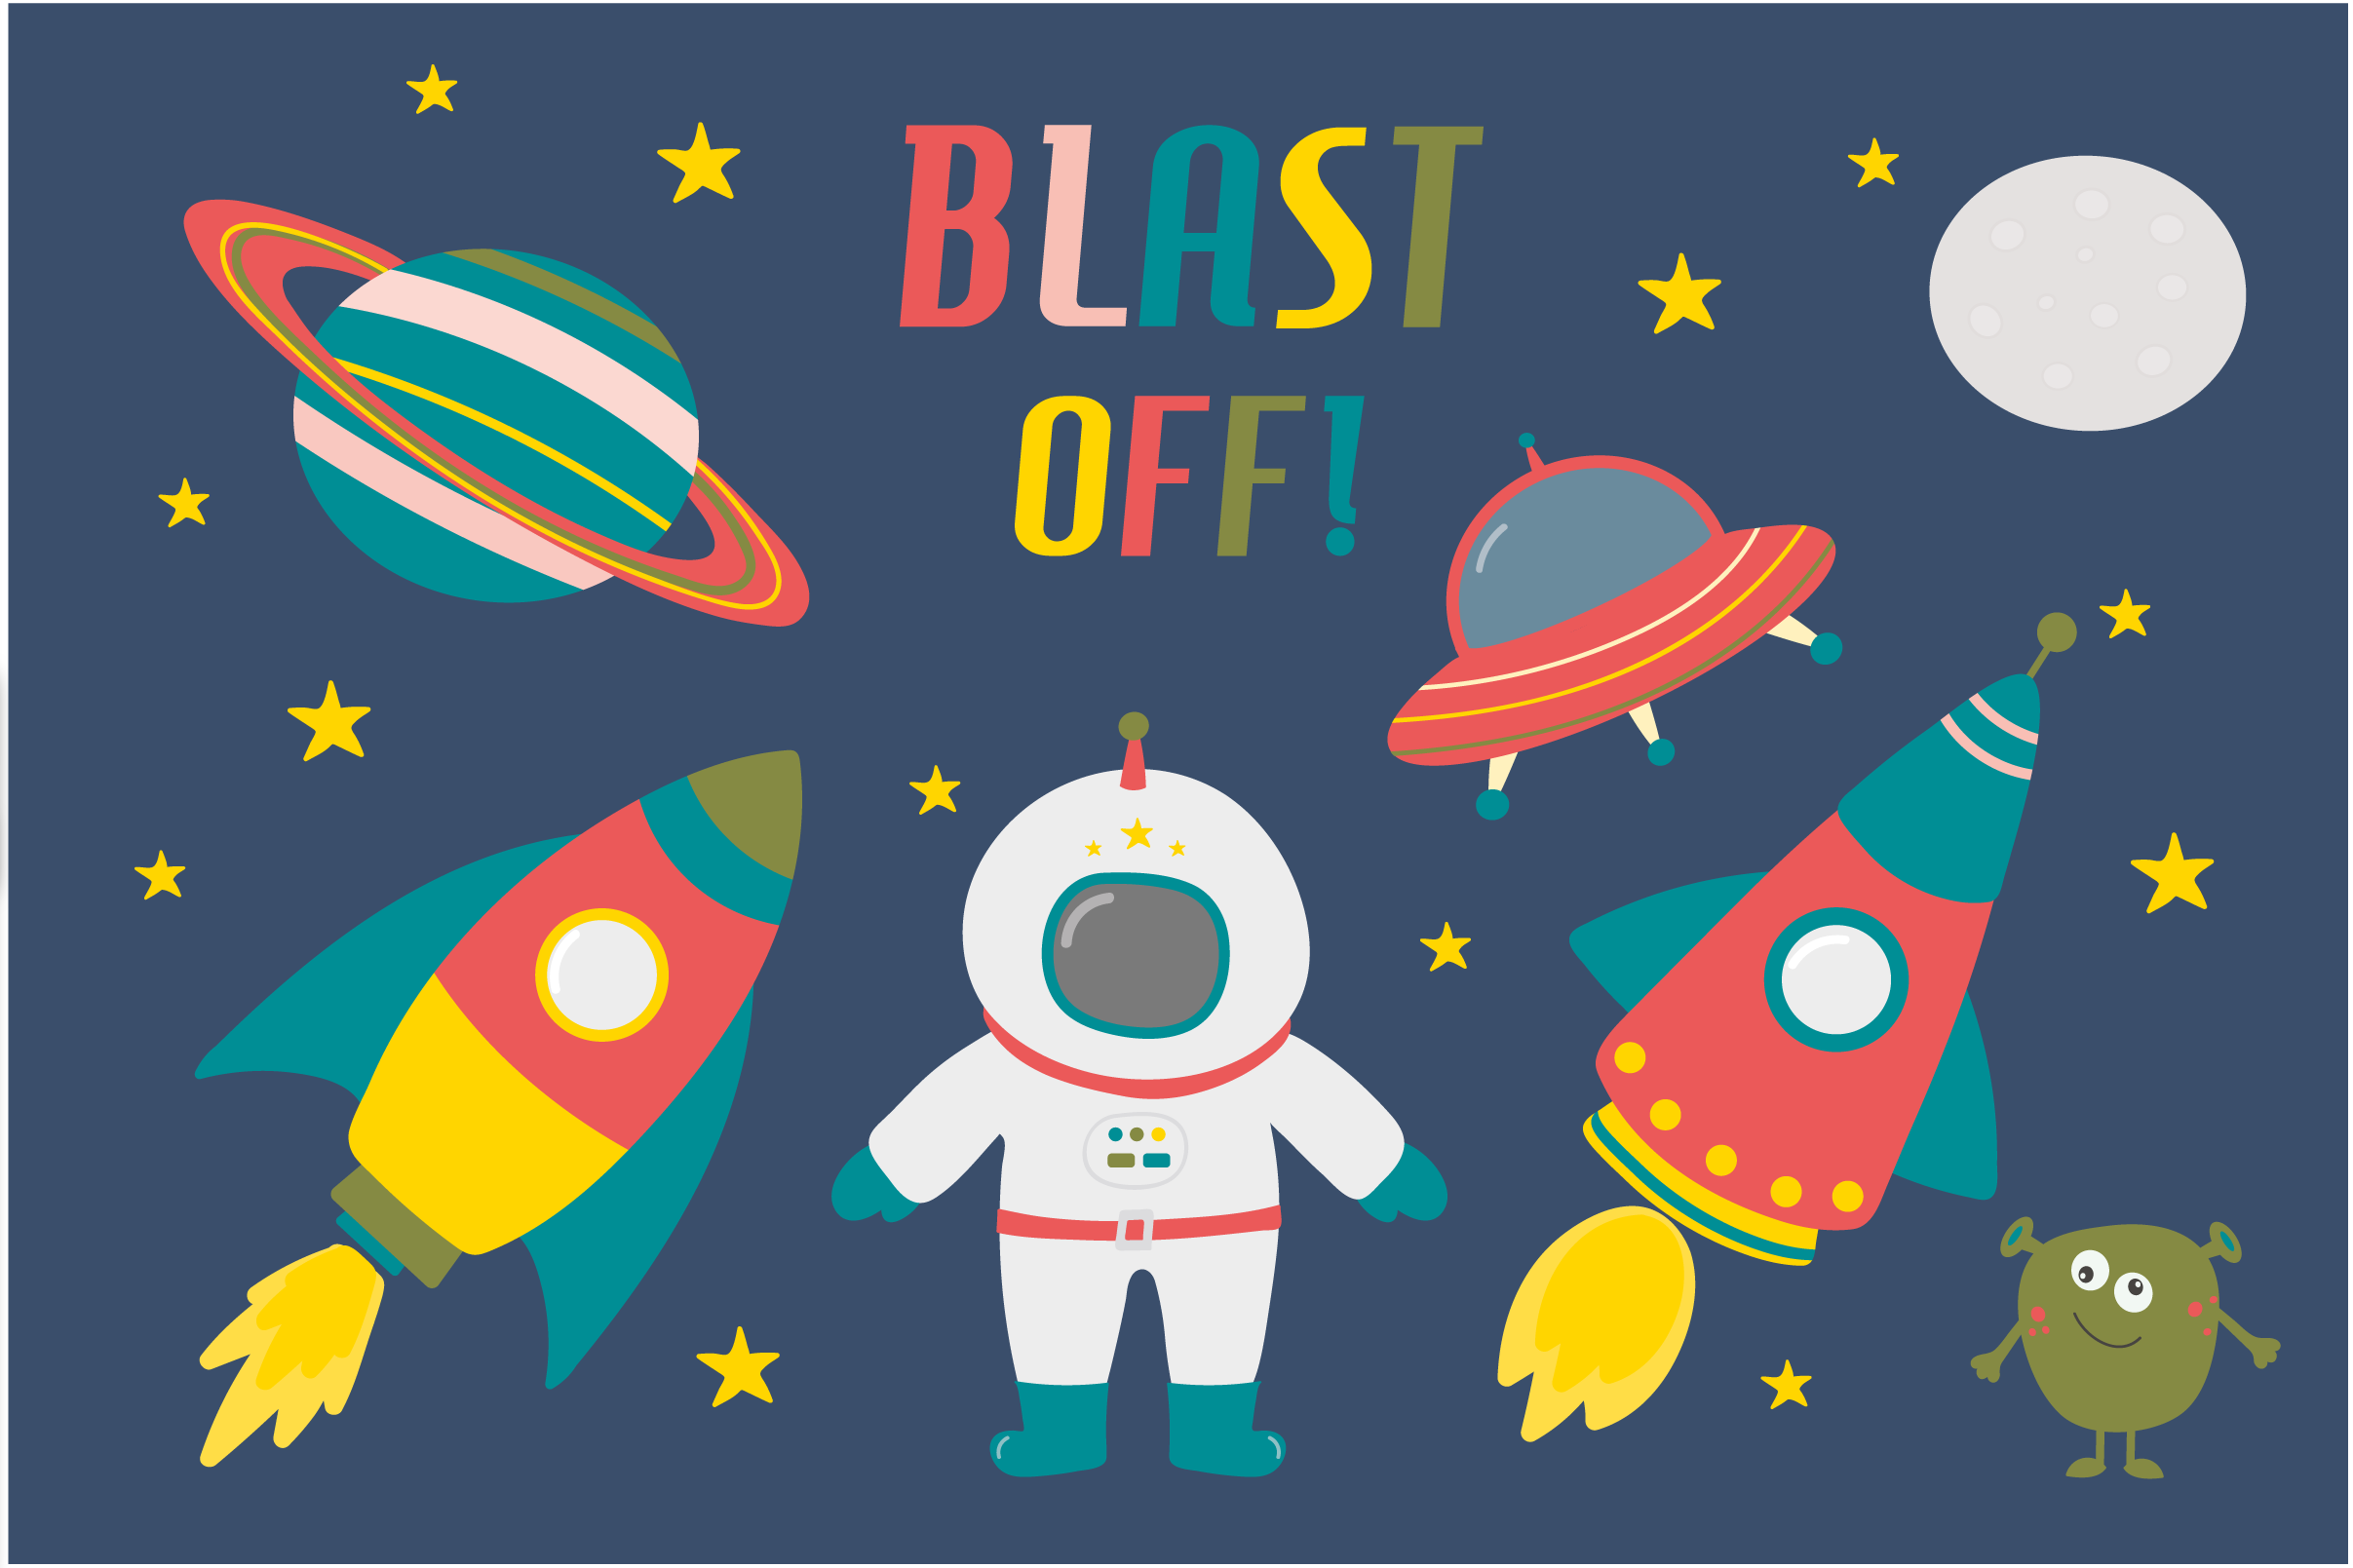 Blast off! Space Clipart (Graphic) by poppymoondesign · Creative Fabrica